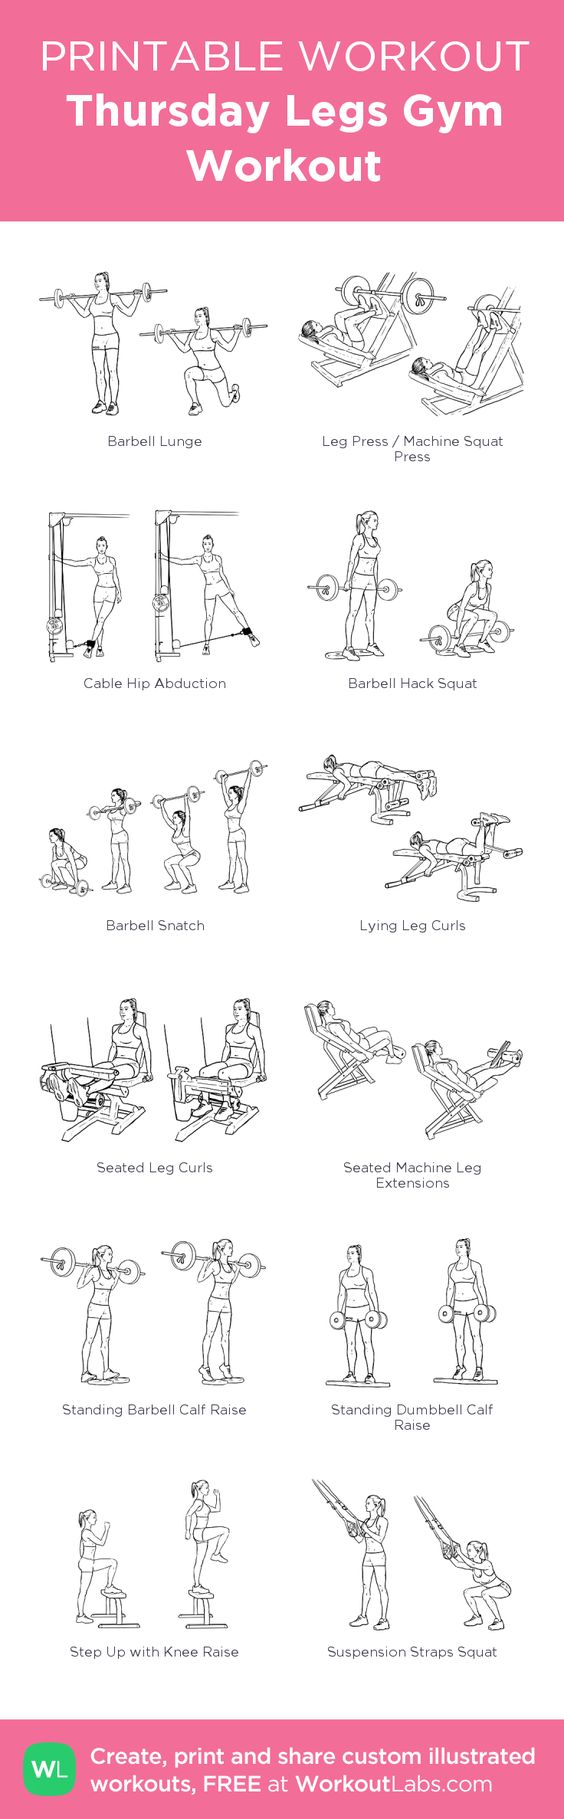 Thursday Legs Gym Workout:my visual workout created at WorkoutLabs.com • Click through to customize and download as a FREE PDF! #customworkout